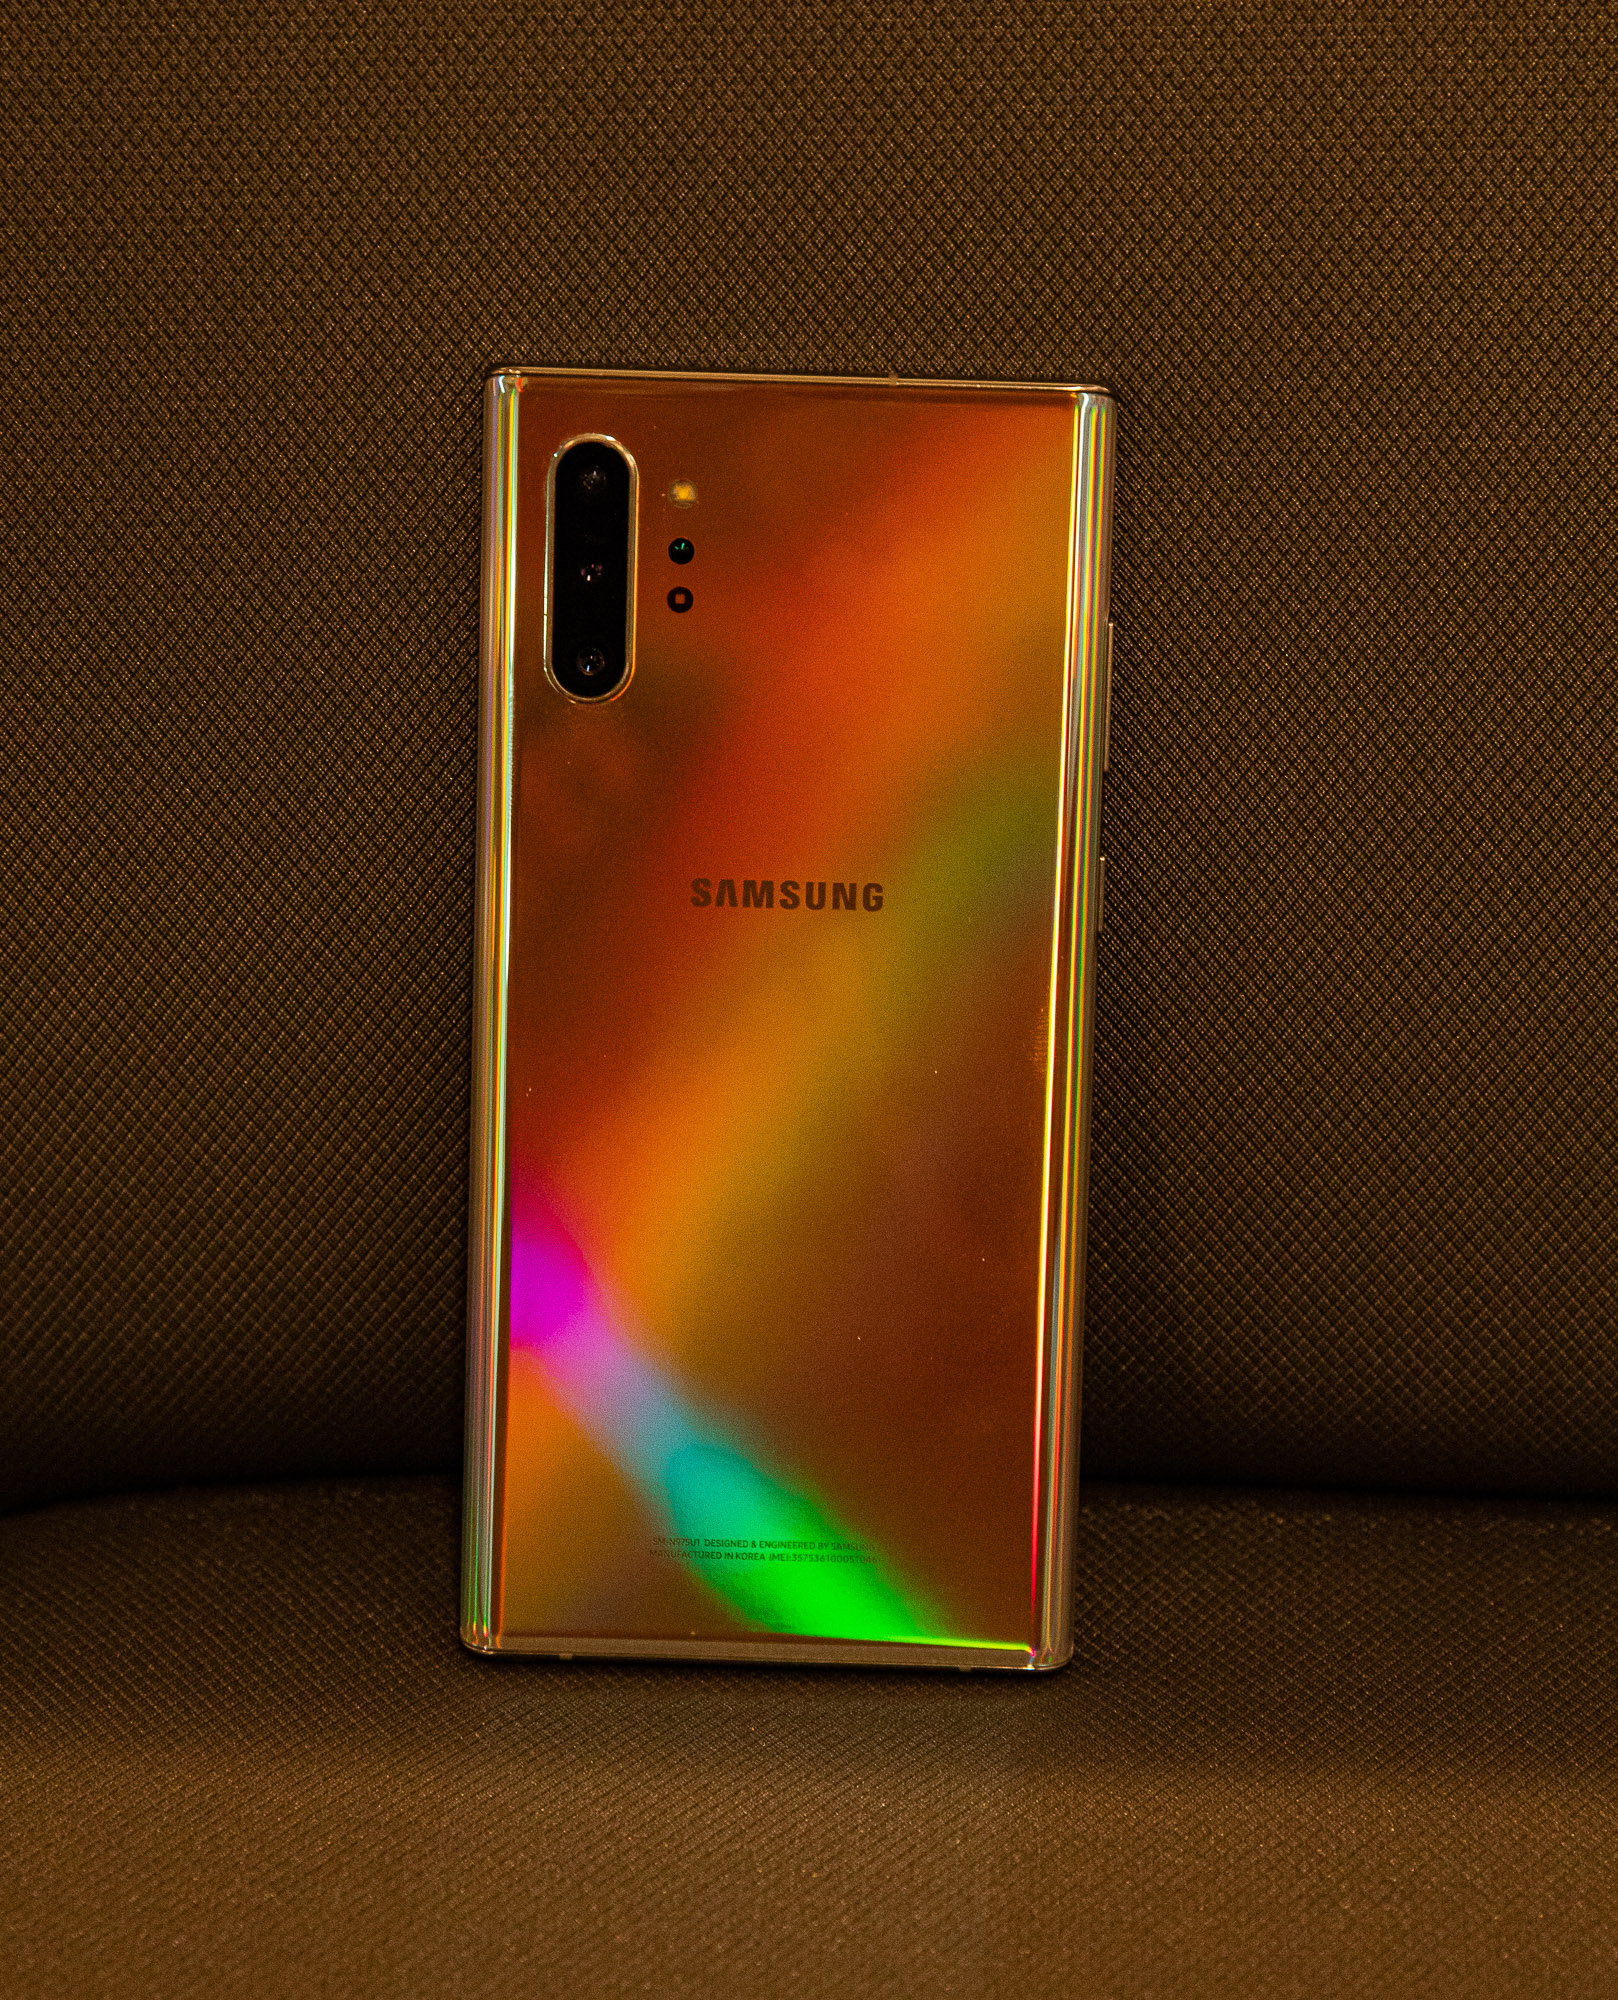 Samsung Galaxy Note 10 Plus and Google Pixel 4 XL